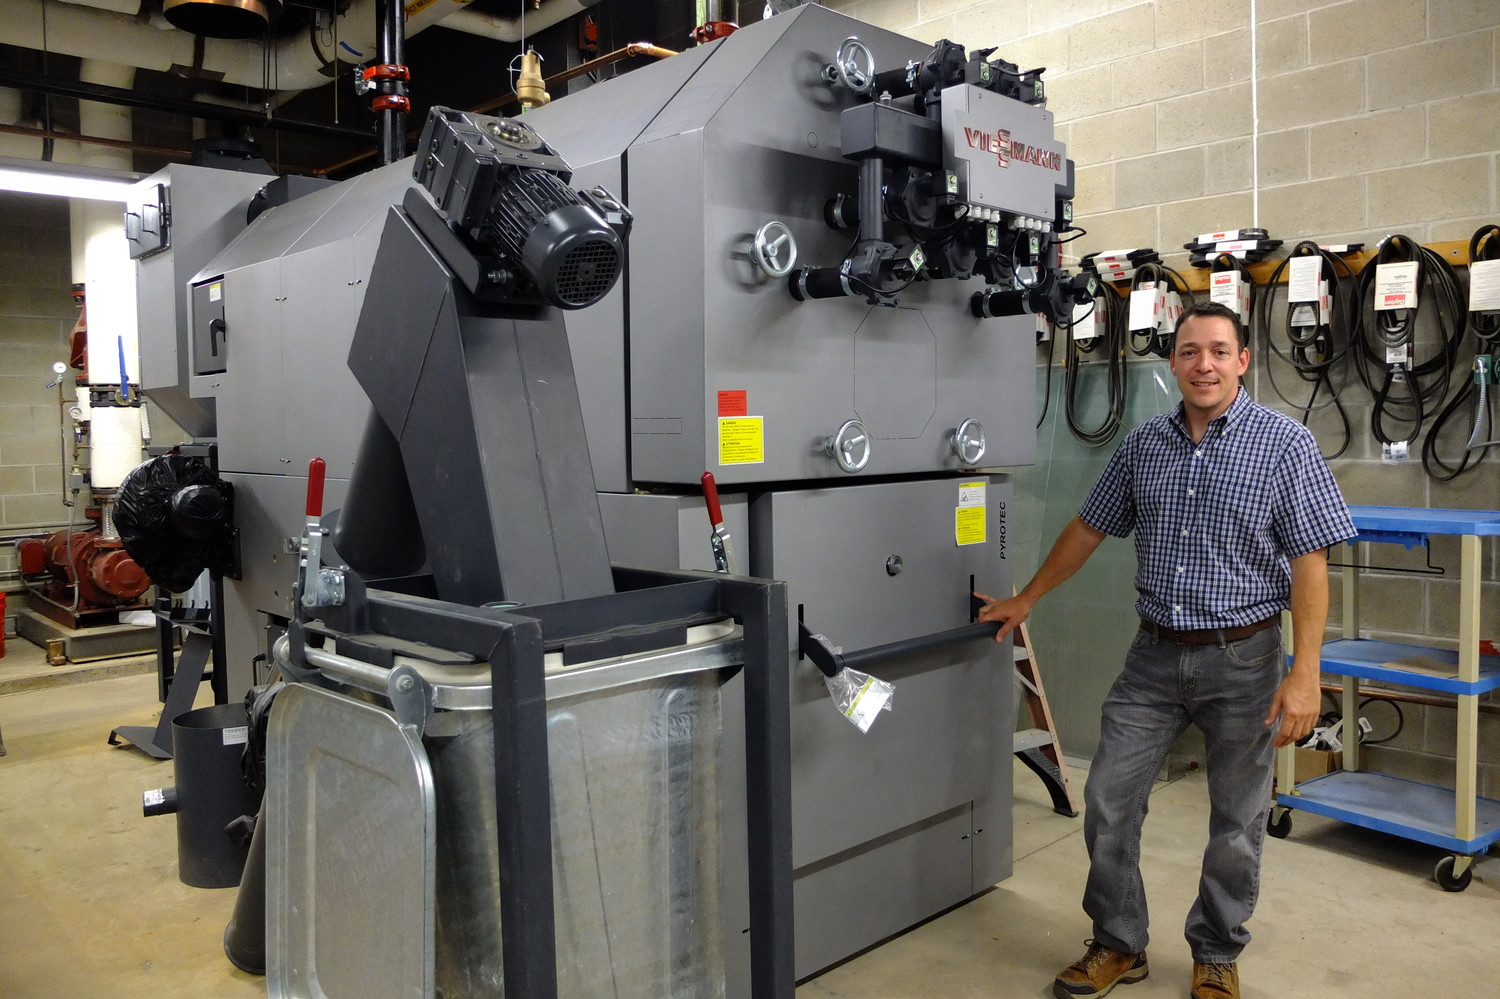 Dave Nappi stands near new high school boiler system.